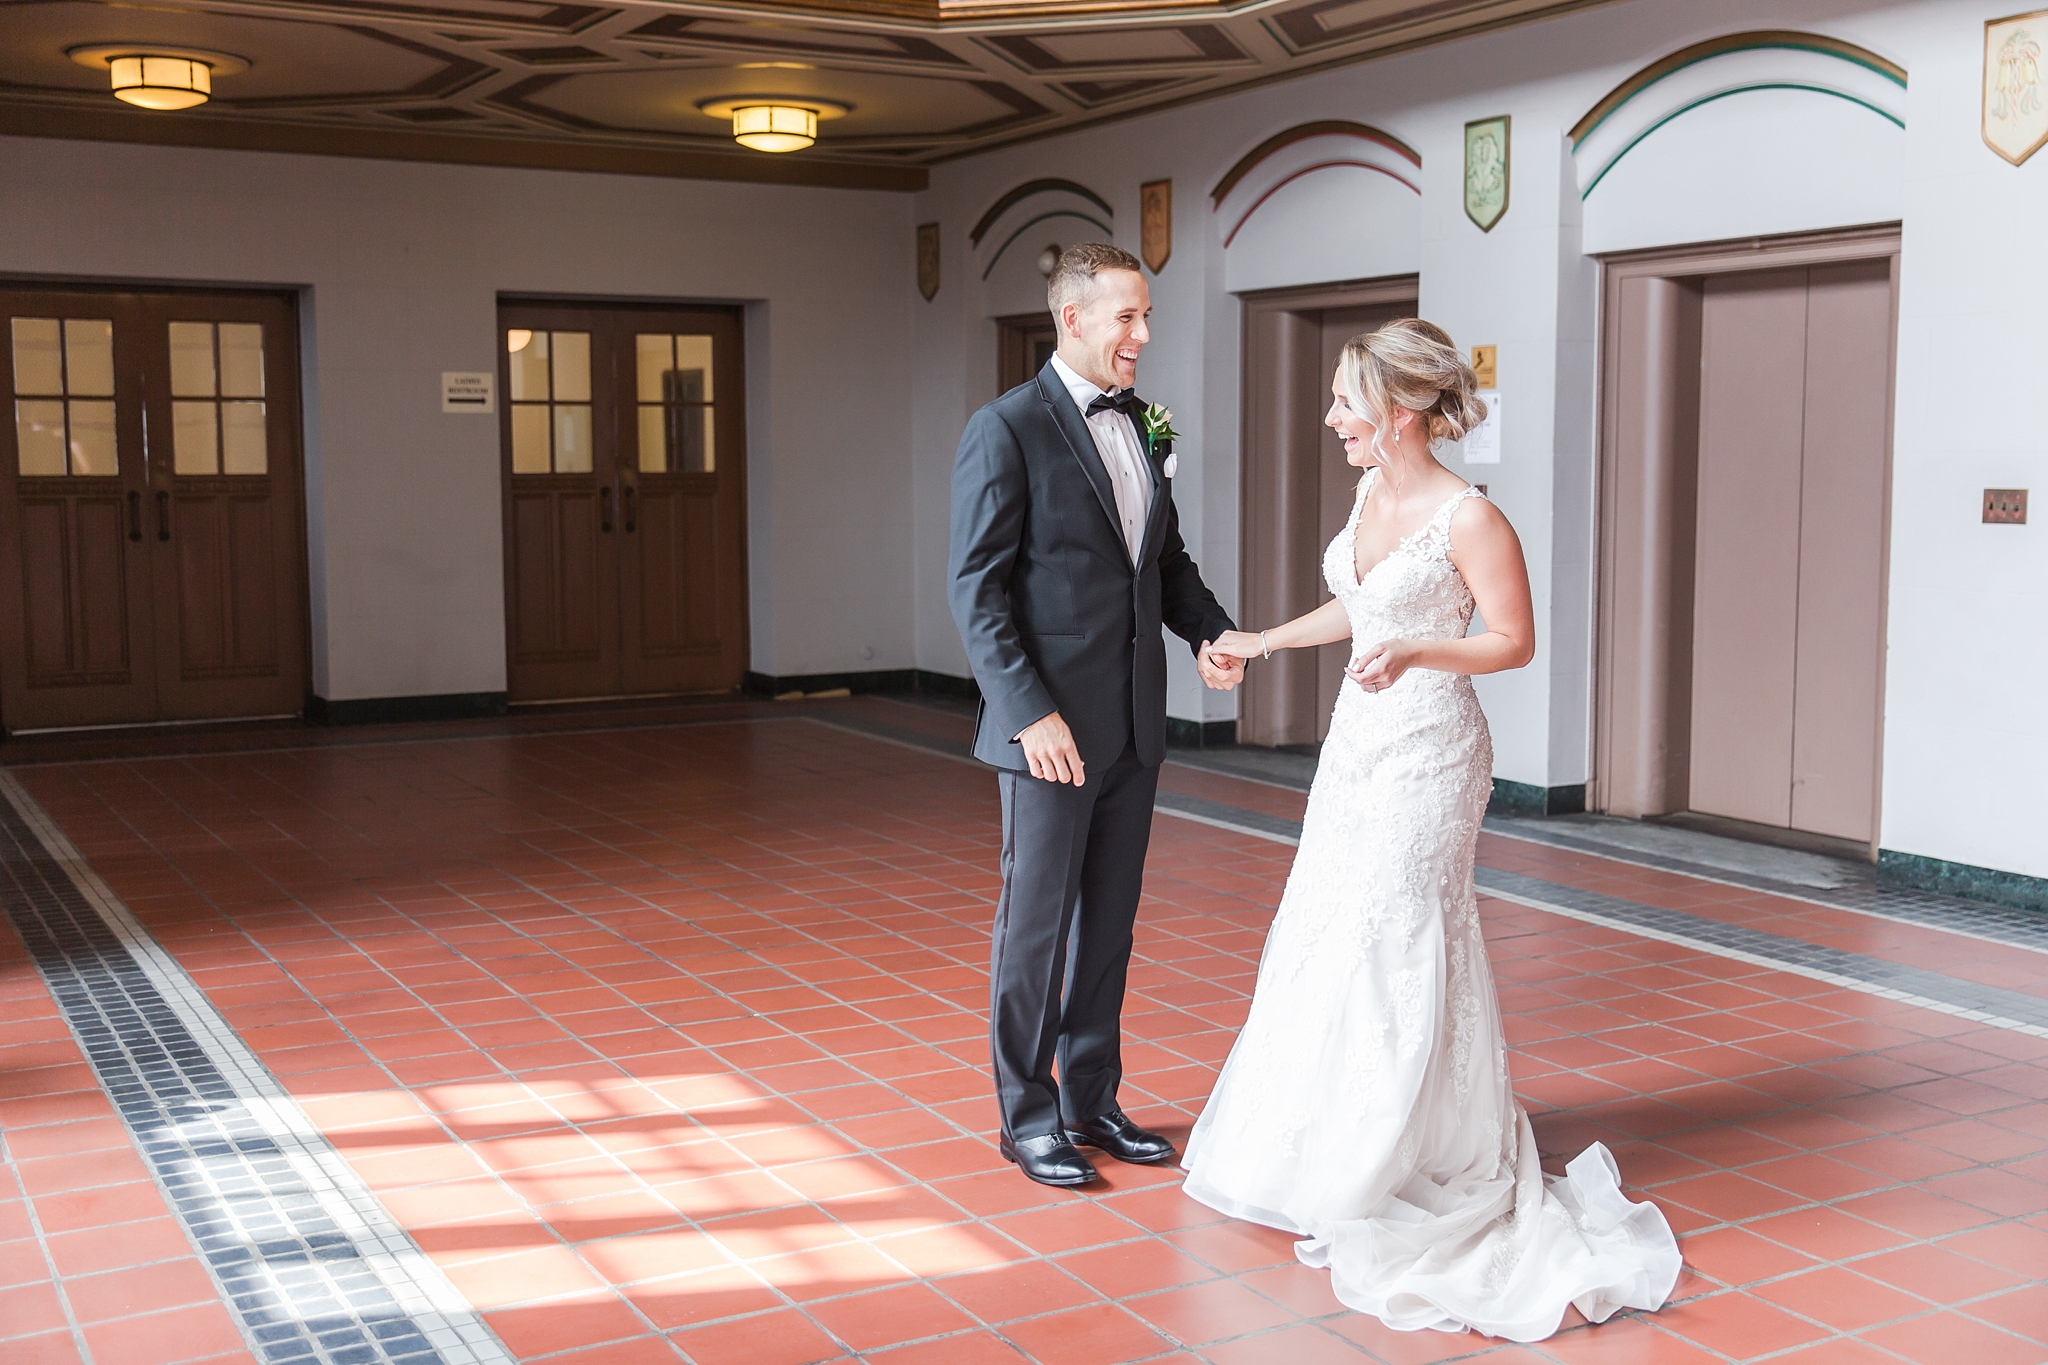 candid-romantic-wedding-photos-at-the-masonic-temple-belle-isle-detroit-institute-of-arts-in-detroit-michigan-by-courtney-carolyn-photography_0028.jpg